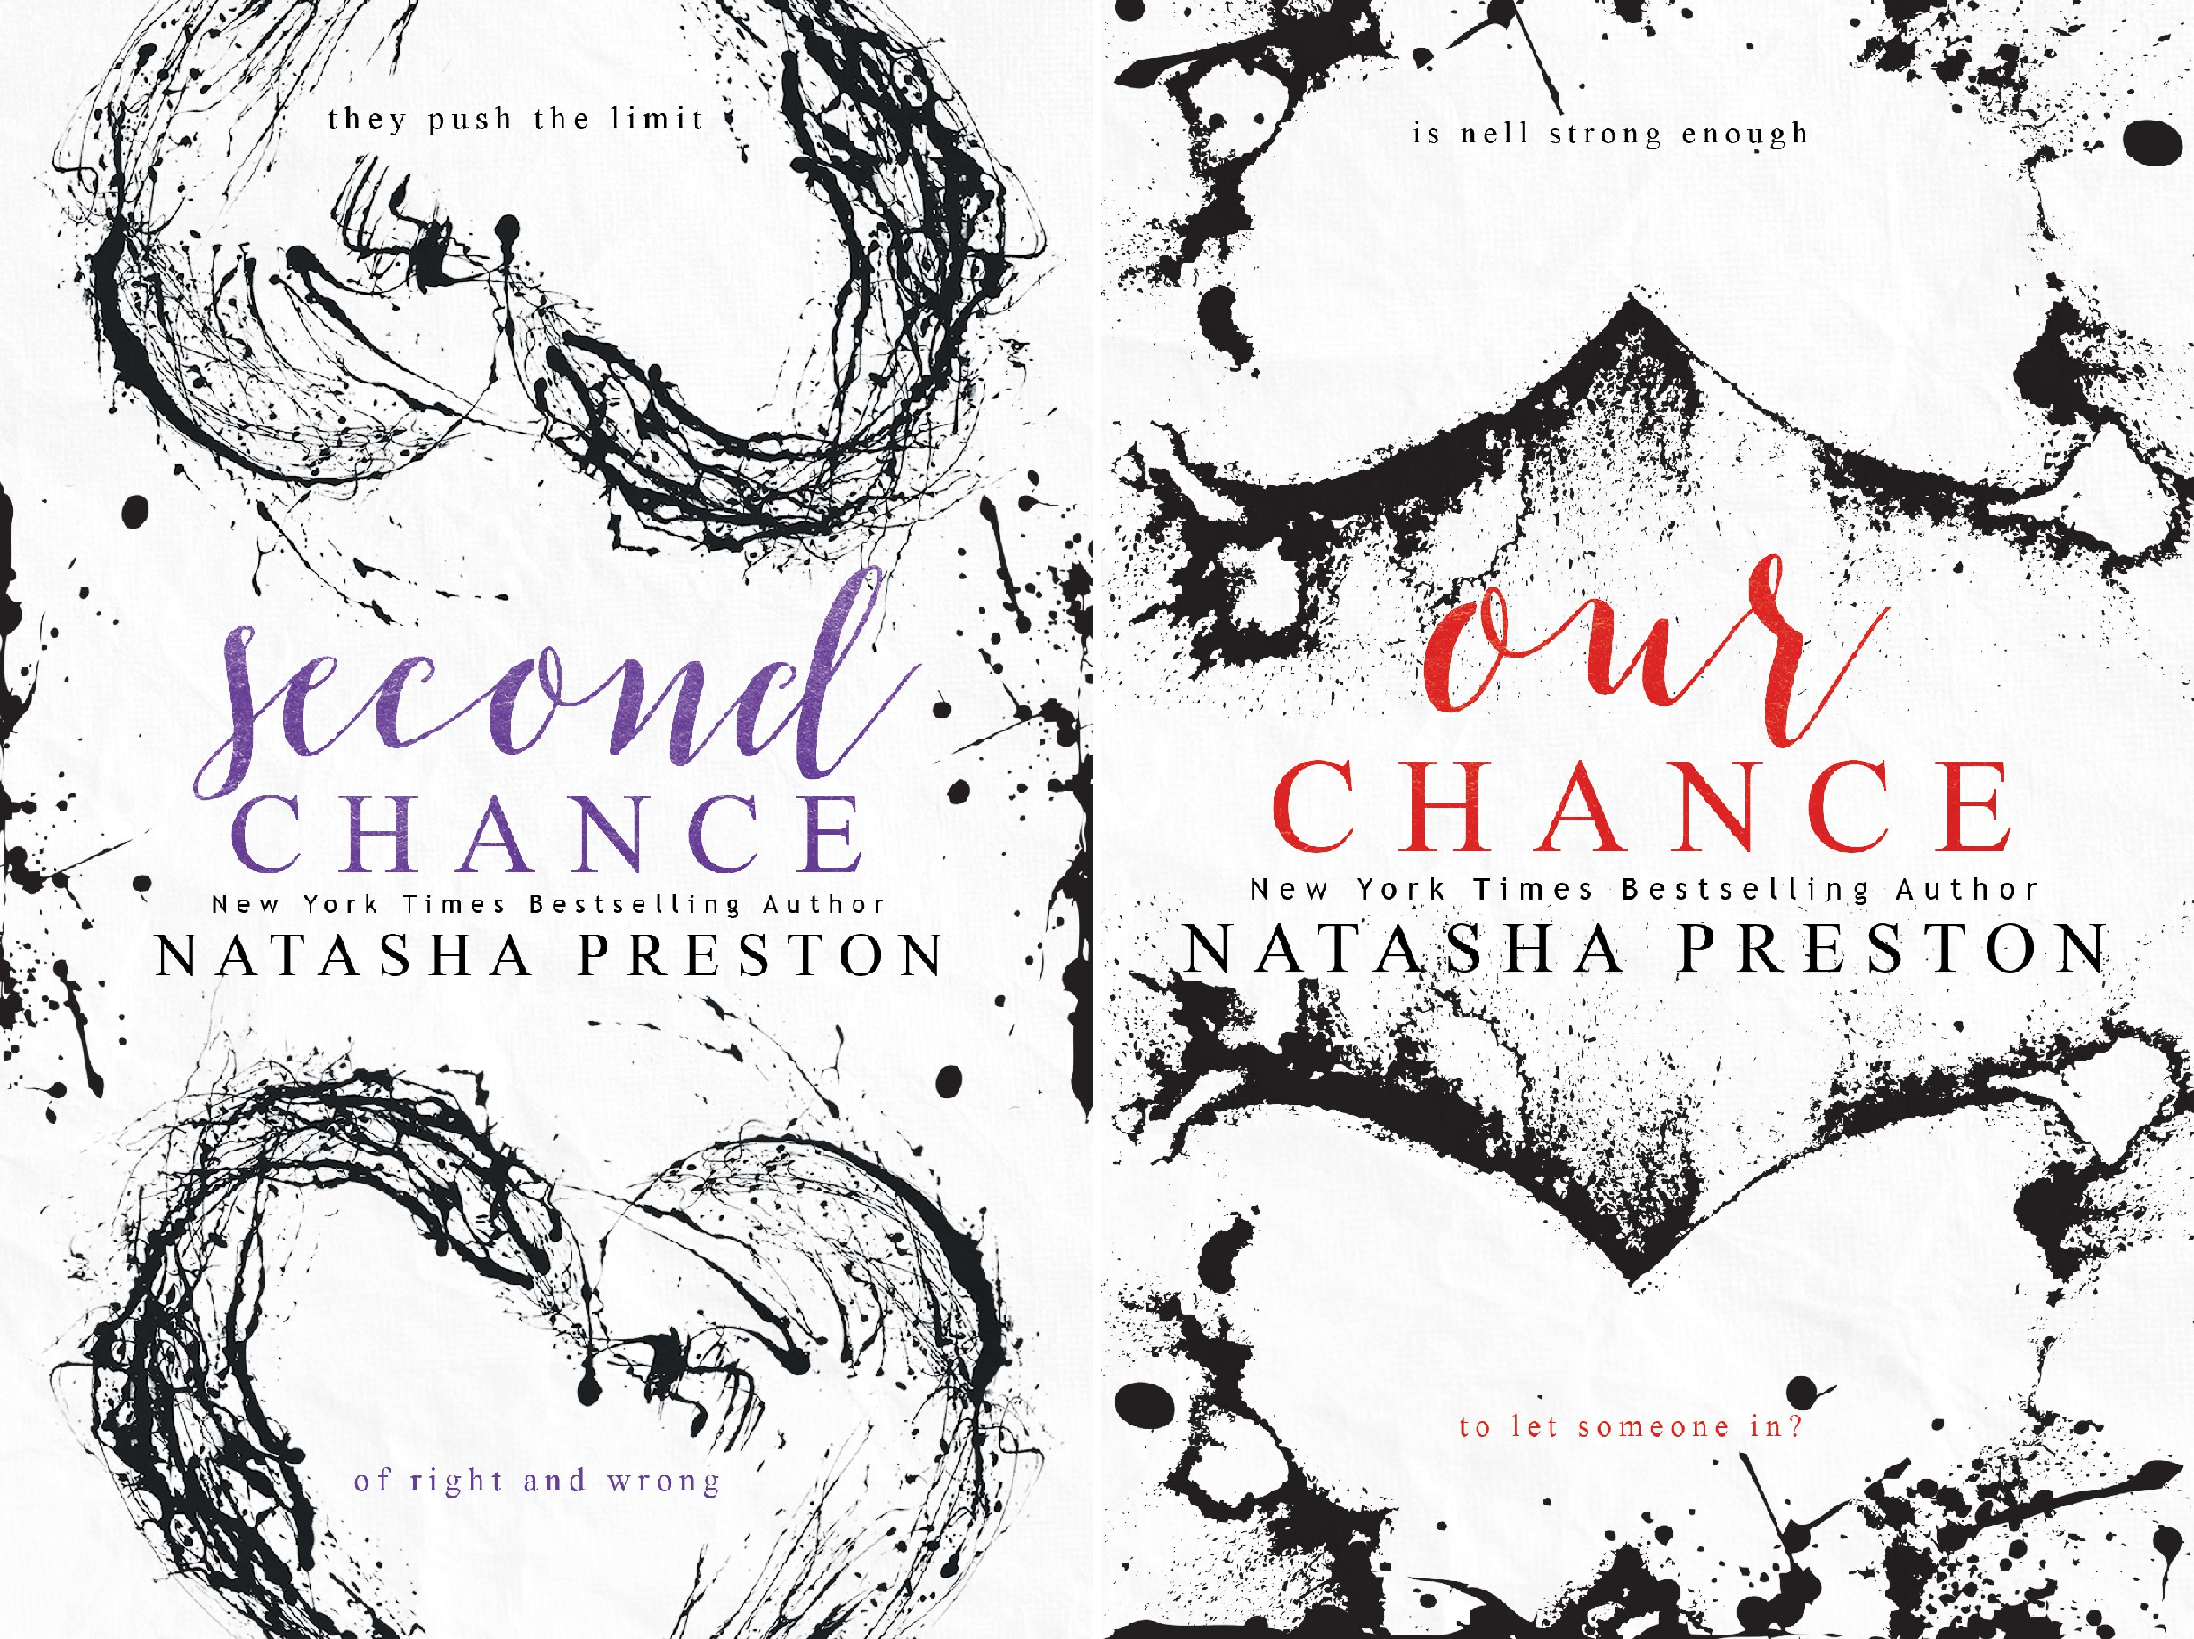 Download Chance Series (2 Book Series) B01BOUUZJA